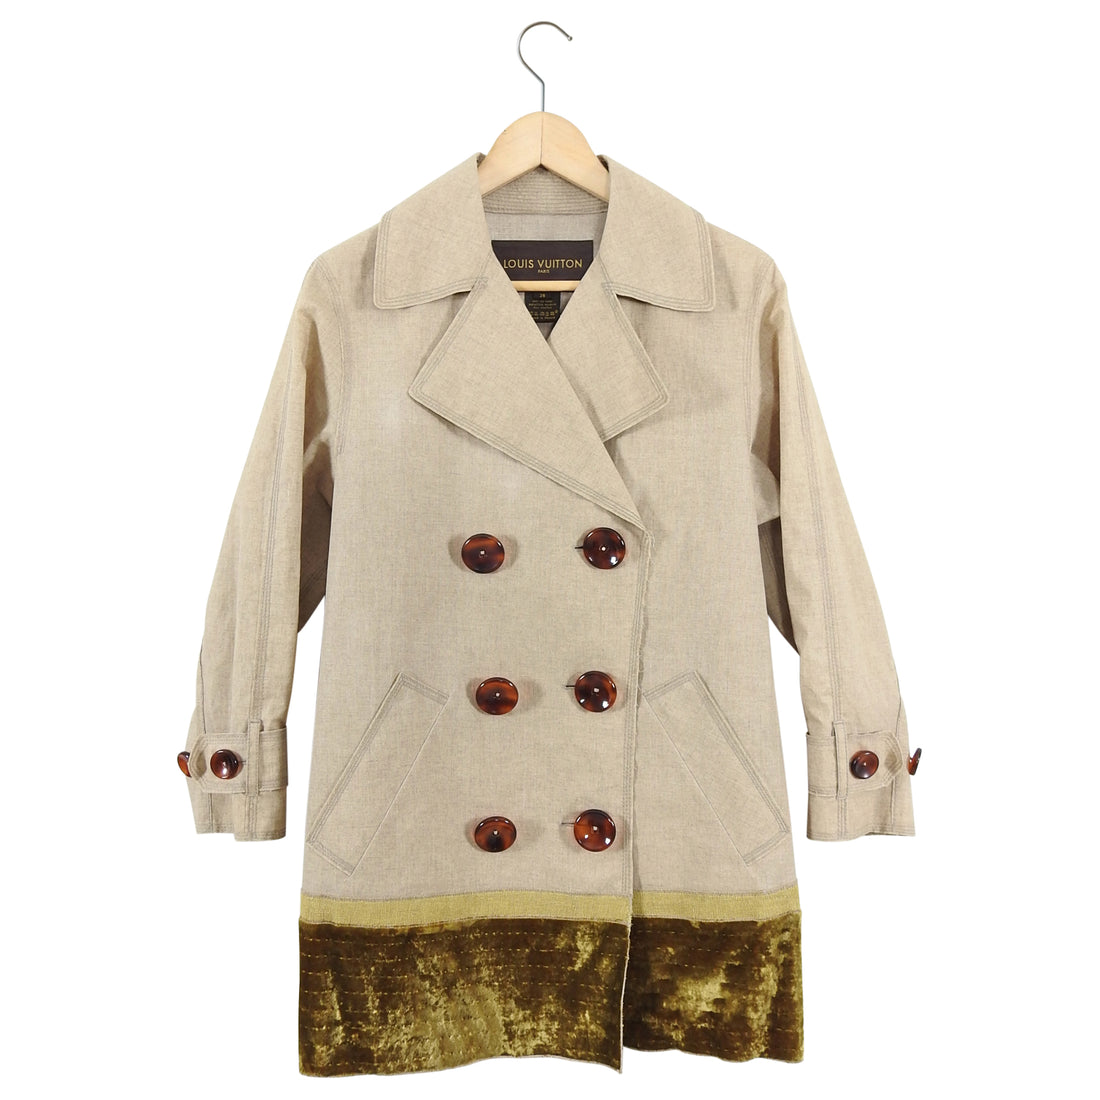 Louis Vuitton Coated Linen Trench Coat with Velvet Monogram Trim - FR38 / 6